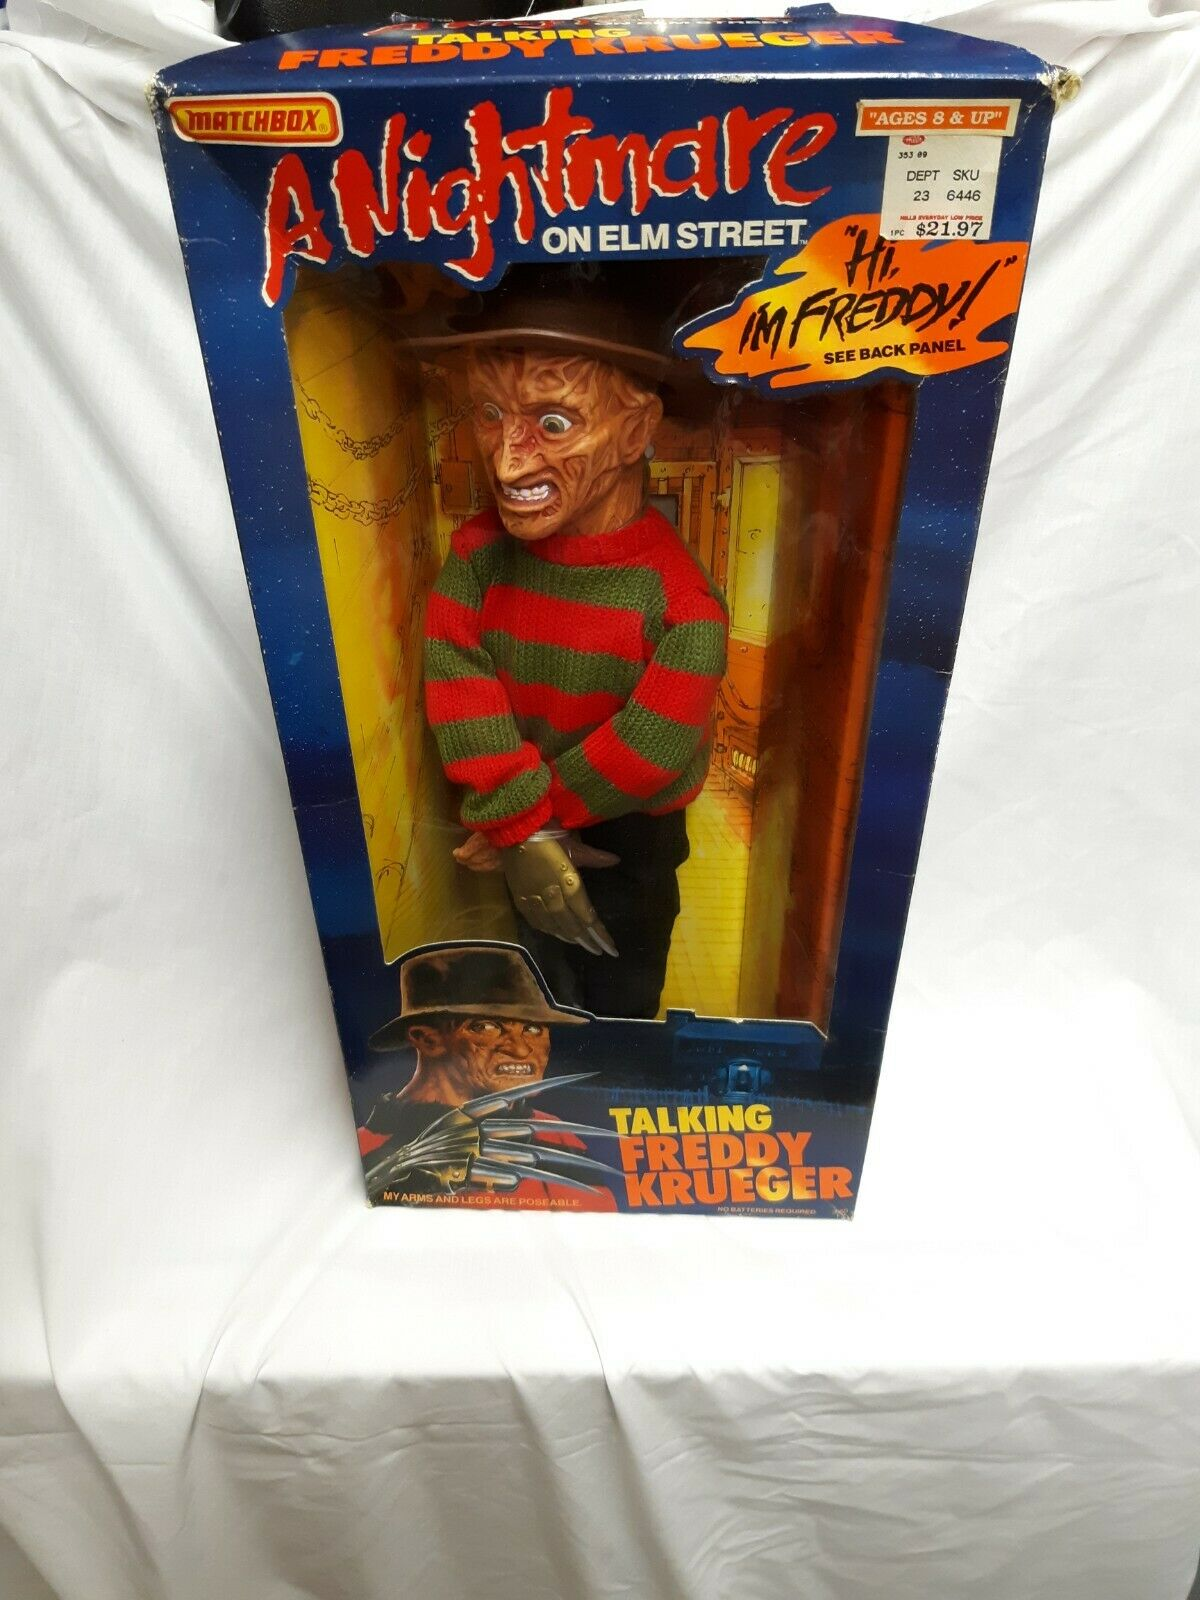 Vintage Matchbox A Nightmare On Elm Street Talking Frotdy Krueger Action Figure